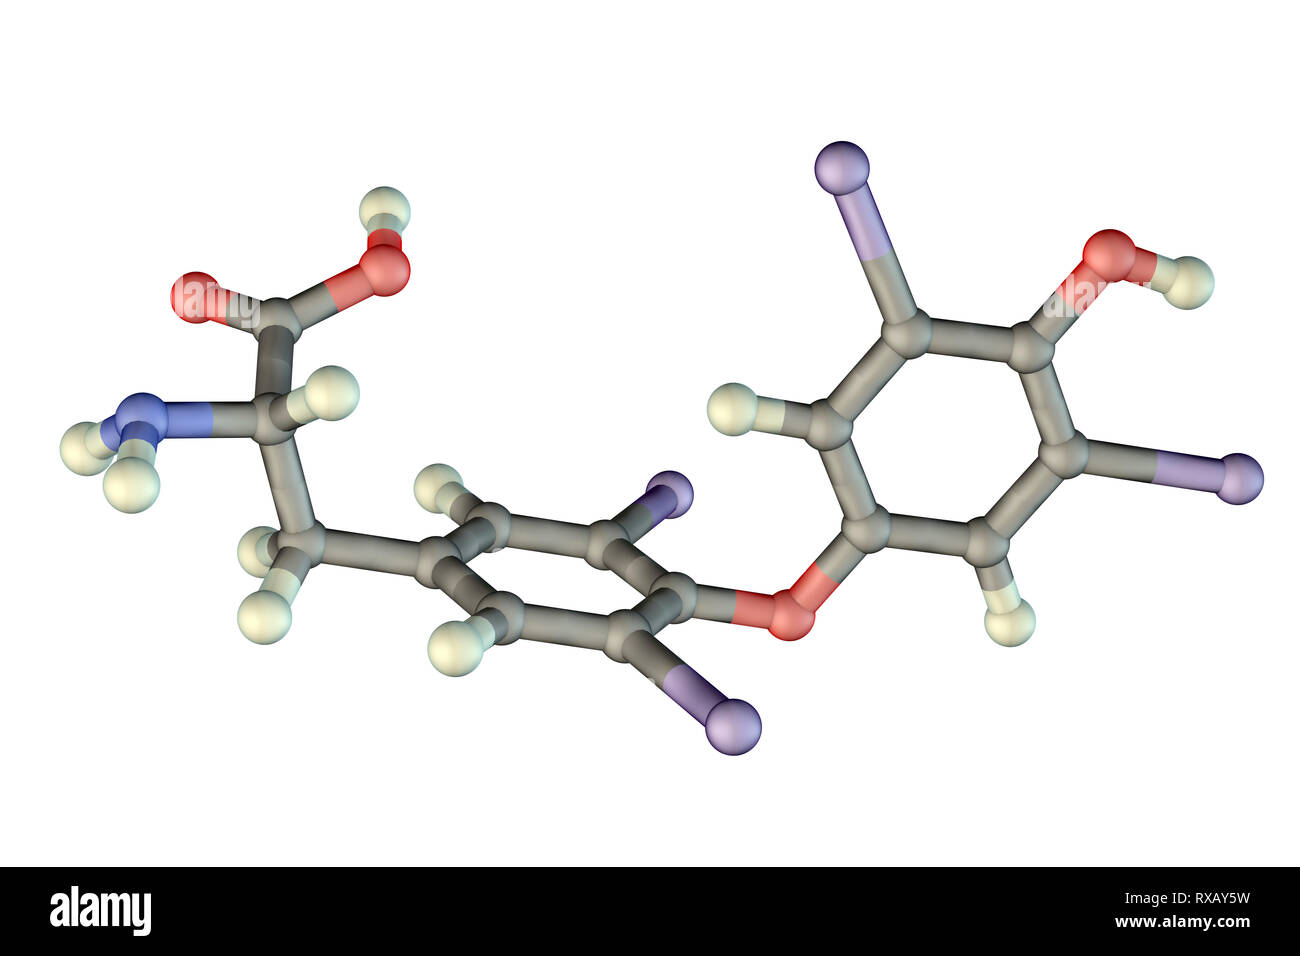 Thyroxine hormone, molecular model Stock Photo